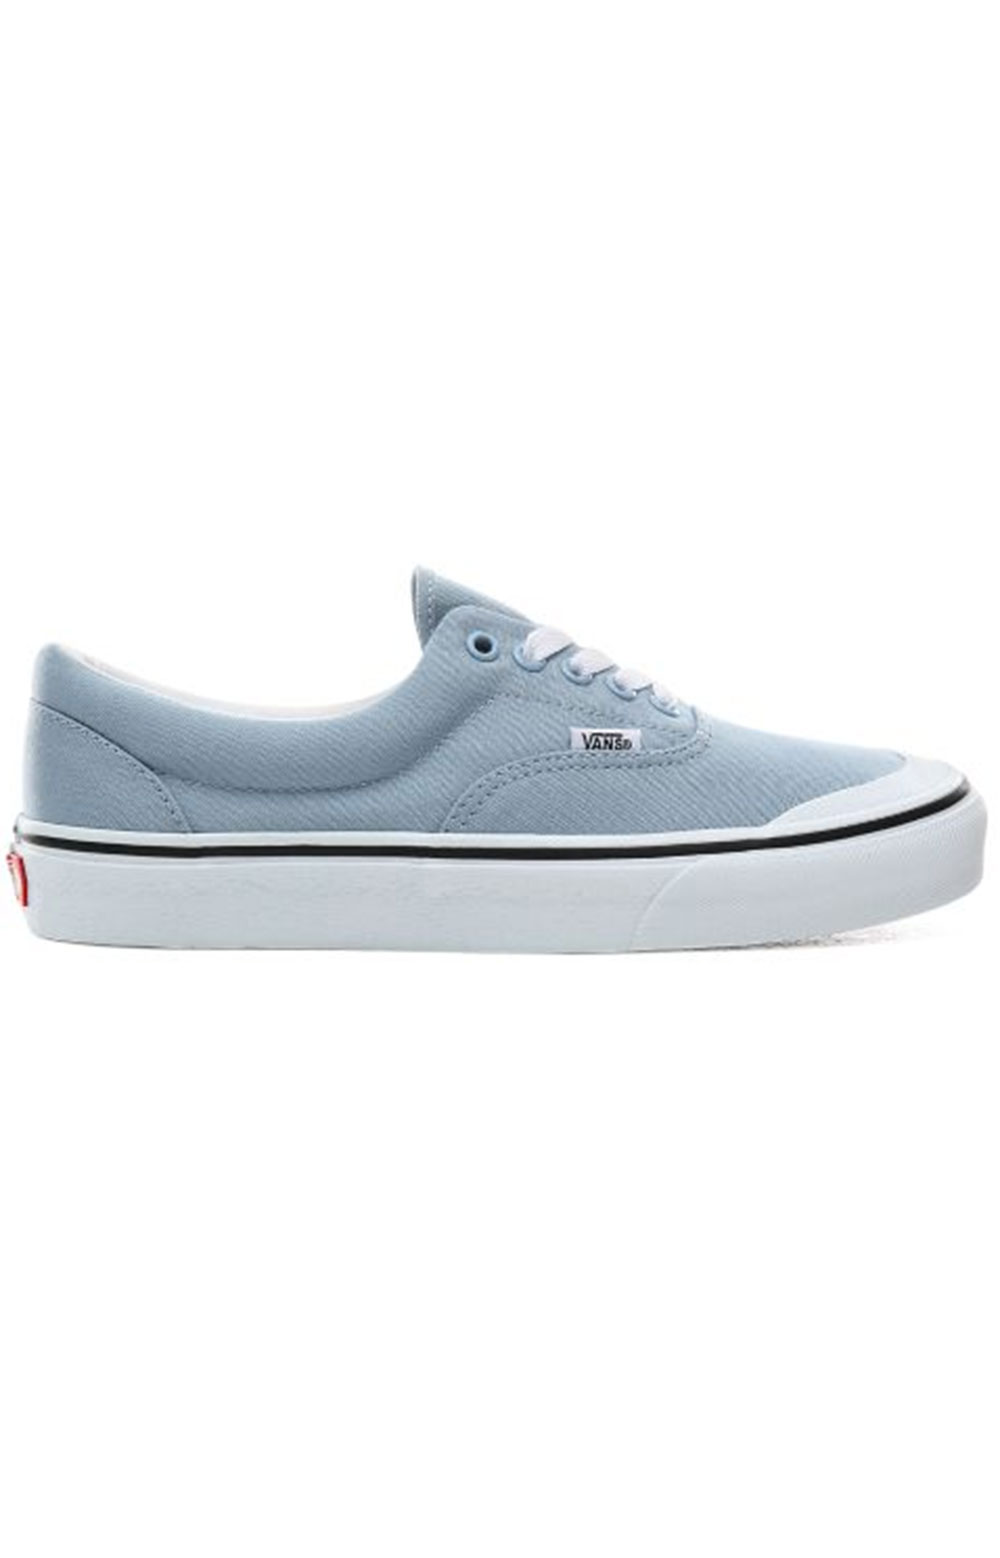 (BTPVYI) Era TC Shoes - Blue Fog